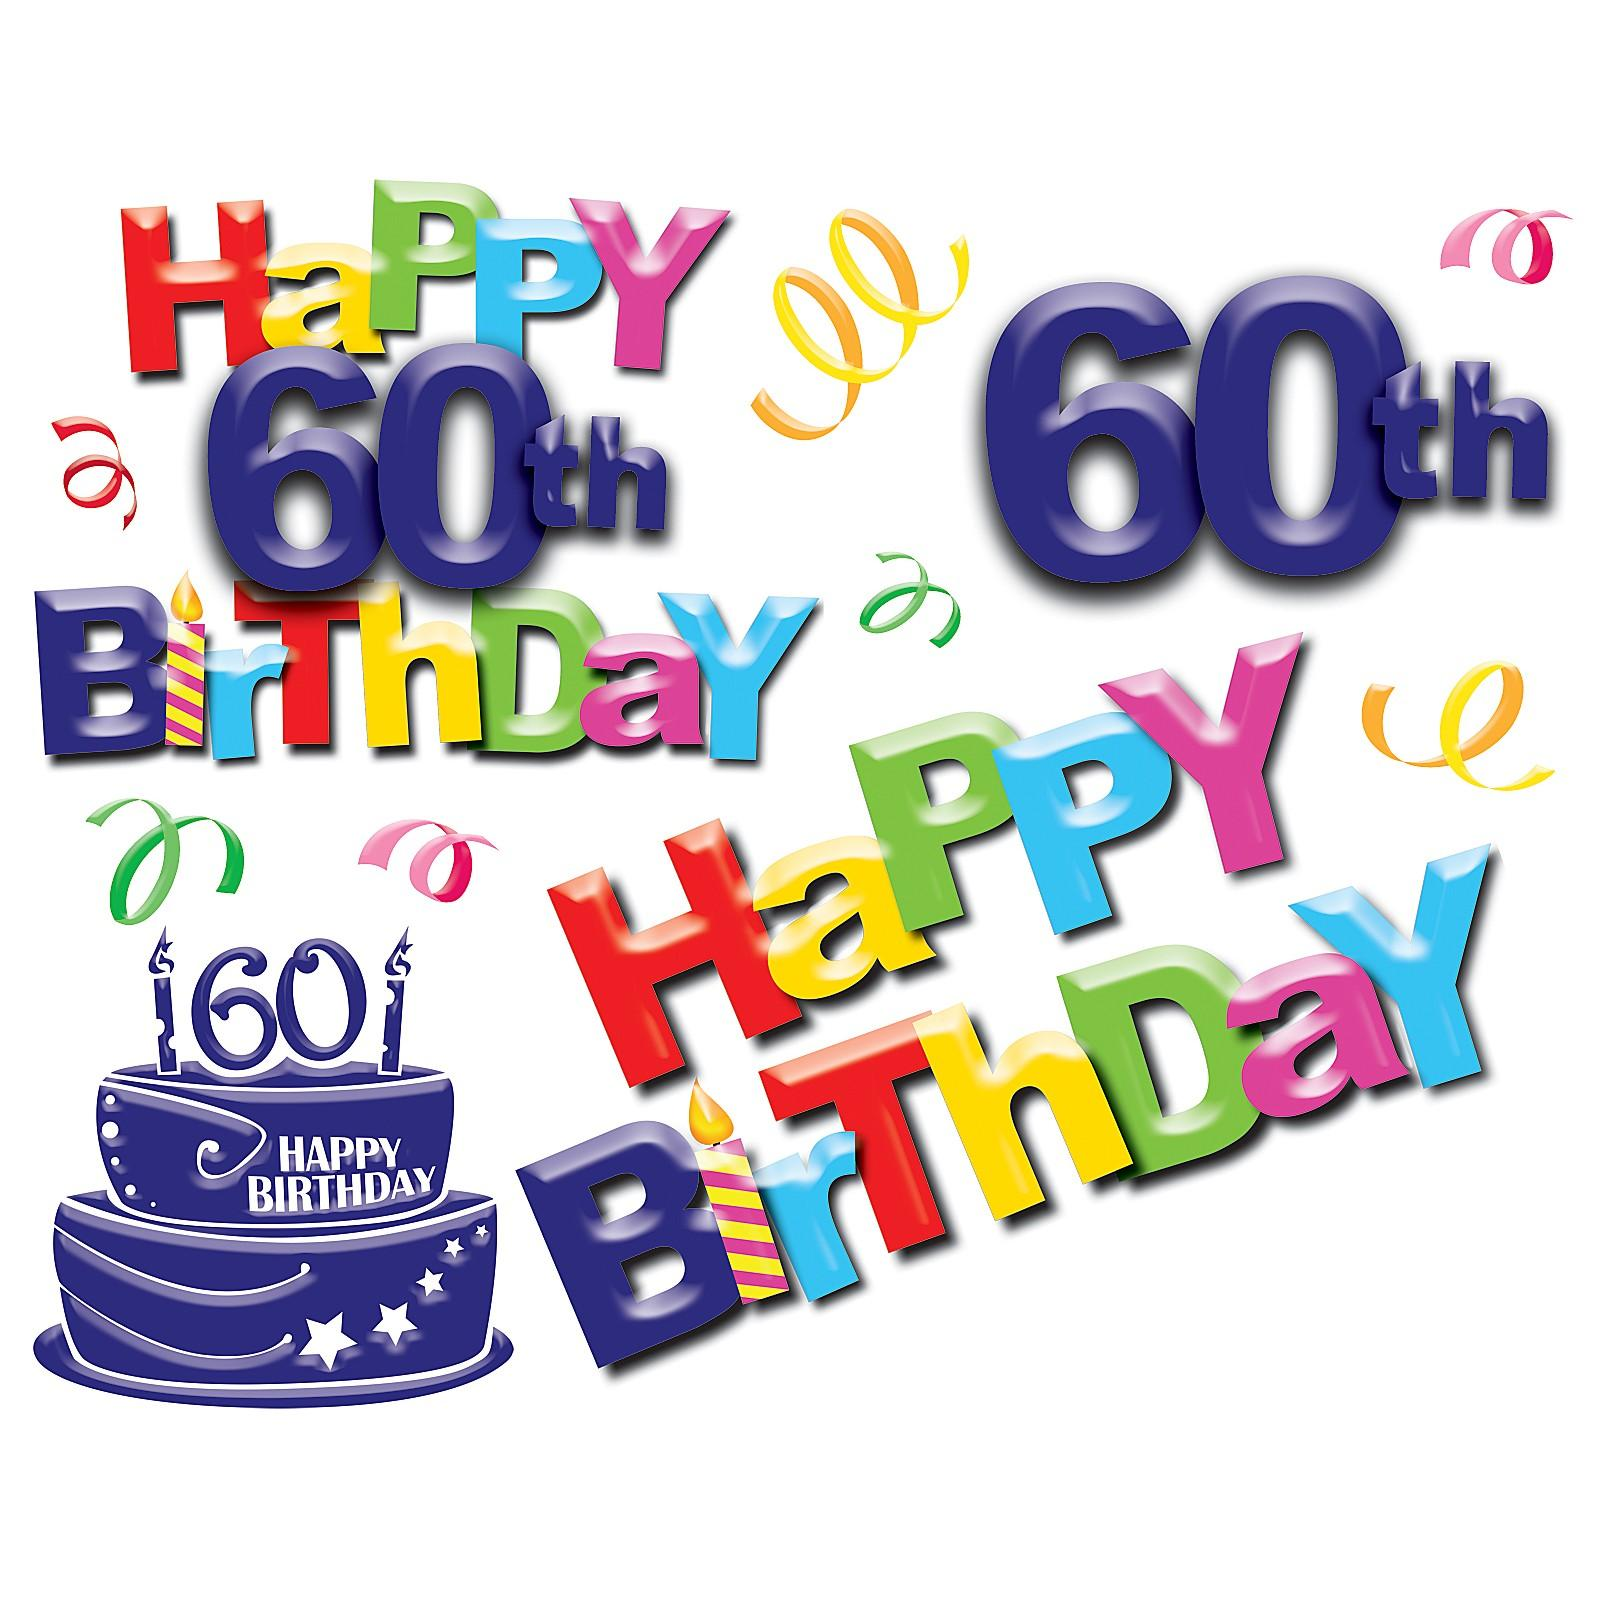 100+ 60th Birthday Wishes - Special Quotes, Messages ...